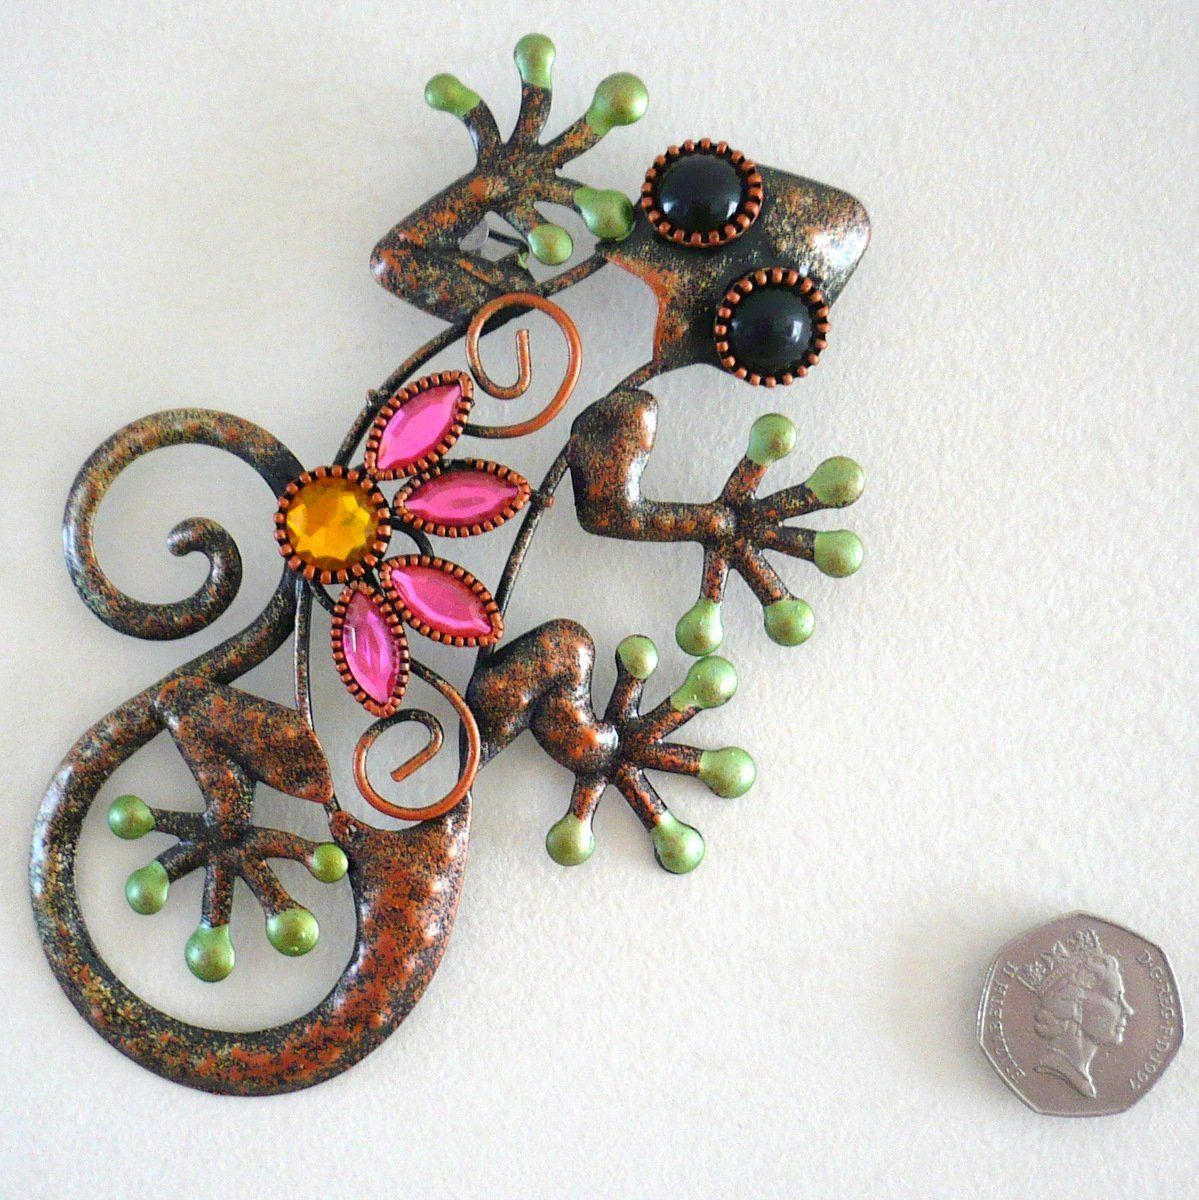 Gecko mini metal wall art with gems for indoor or outdoor use